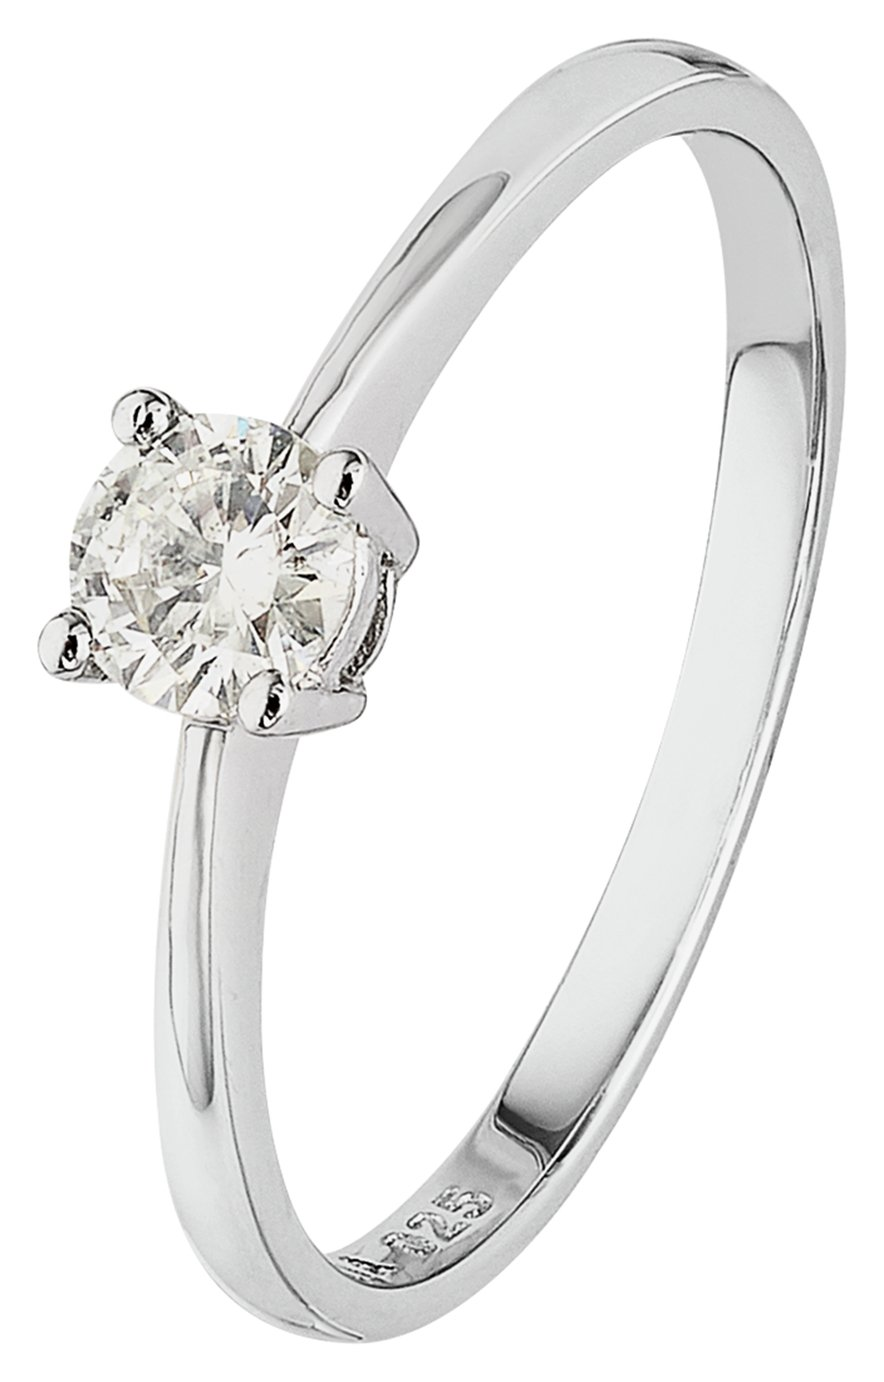 Revere 9ct White Gold 0.25ct Diamond Solitaire Ring - N